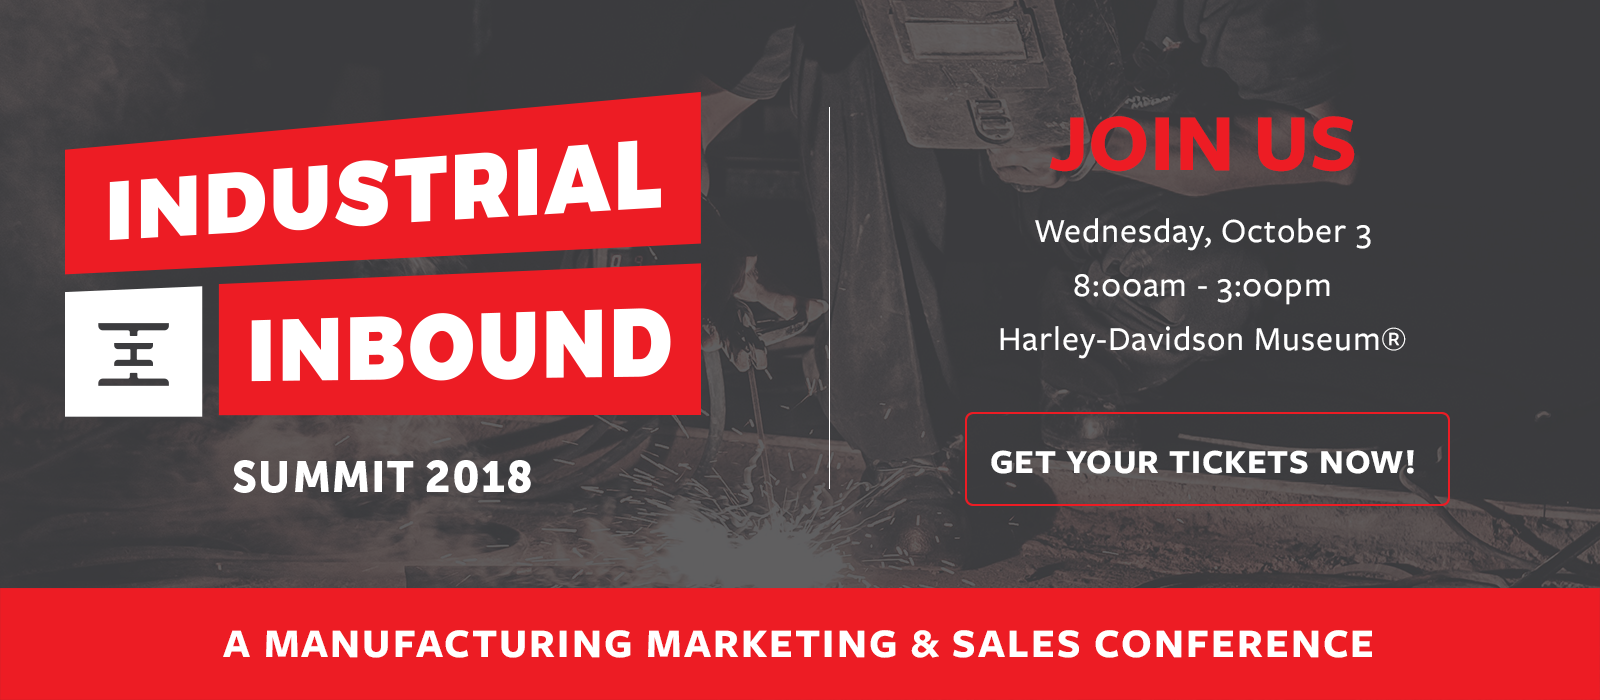 Industrial Inbound Summit 2018